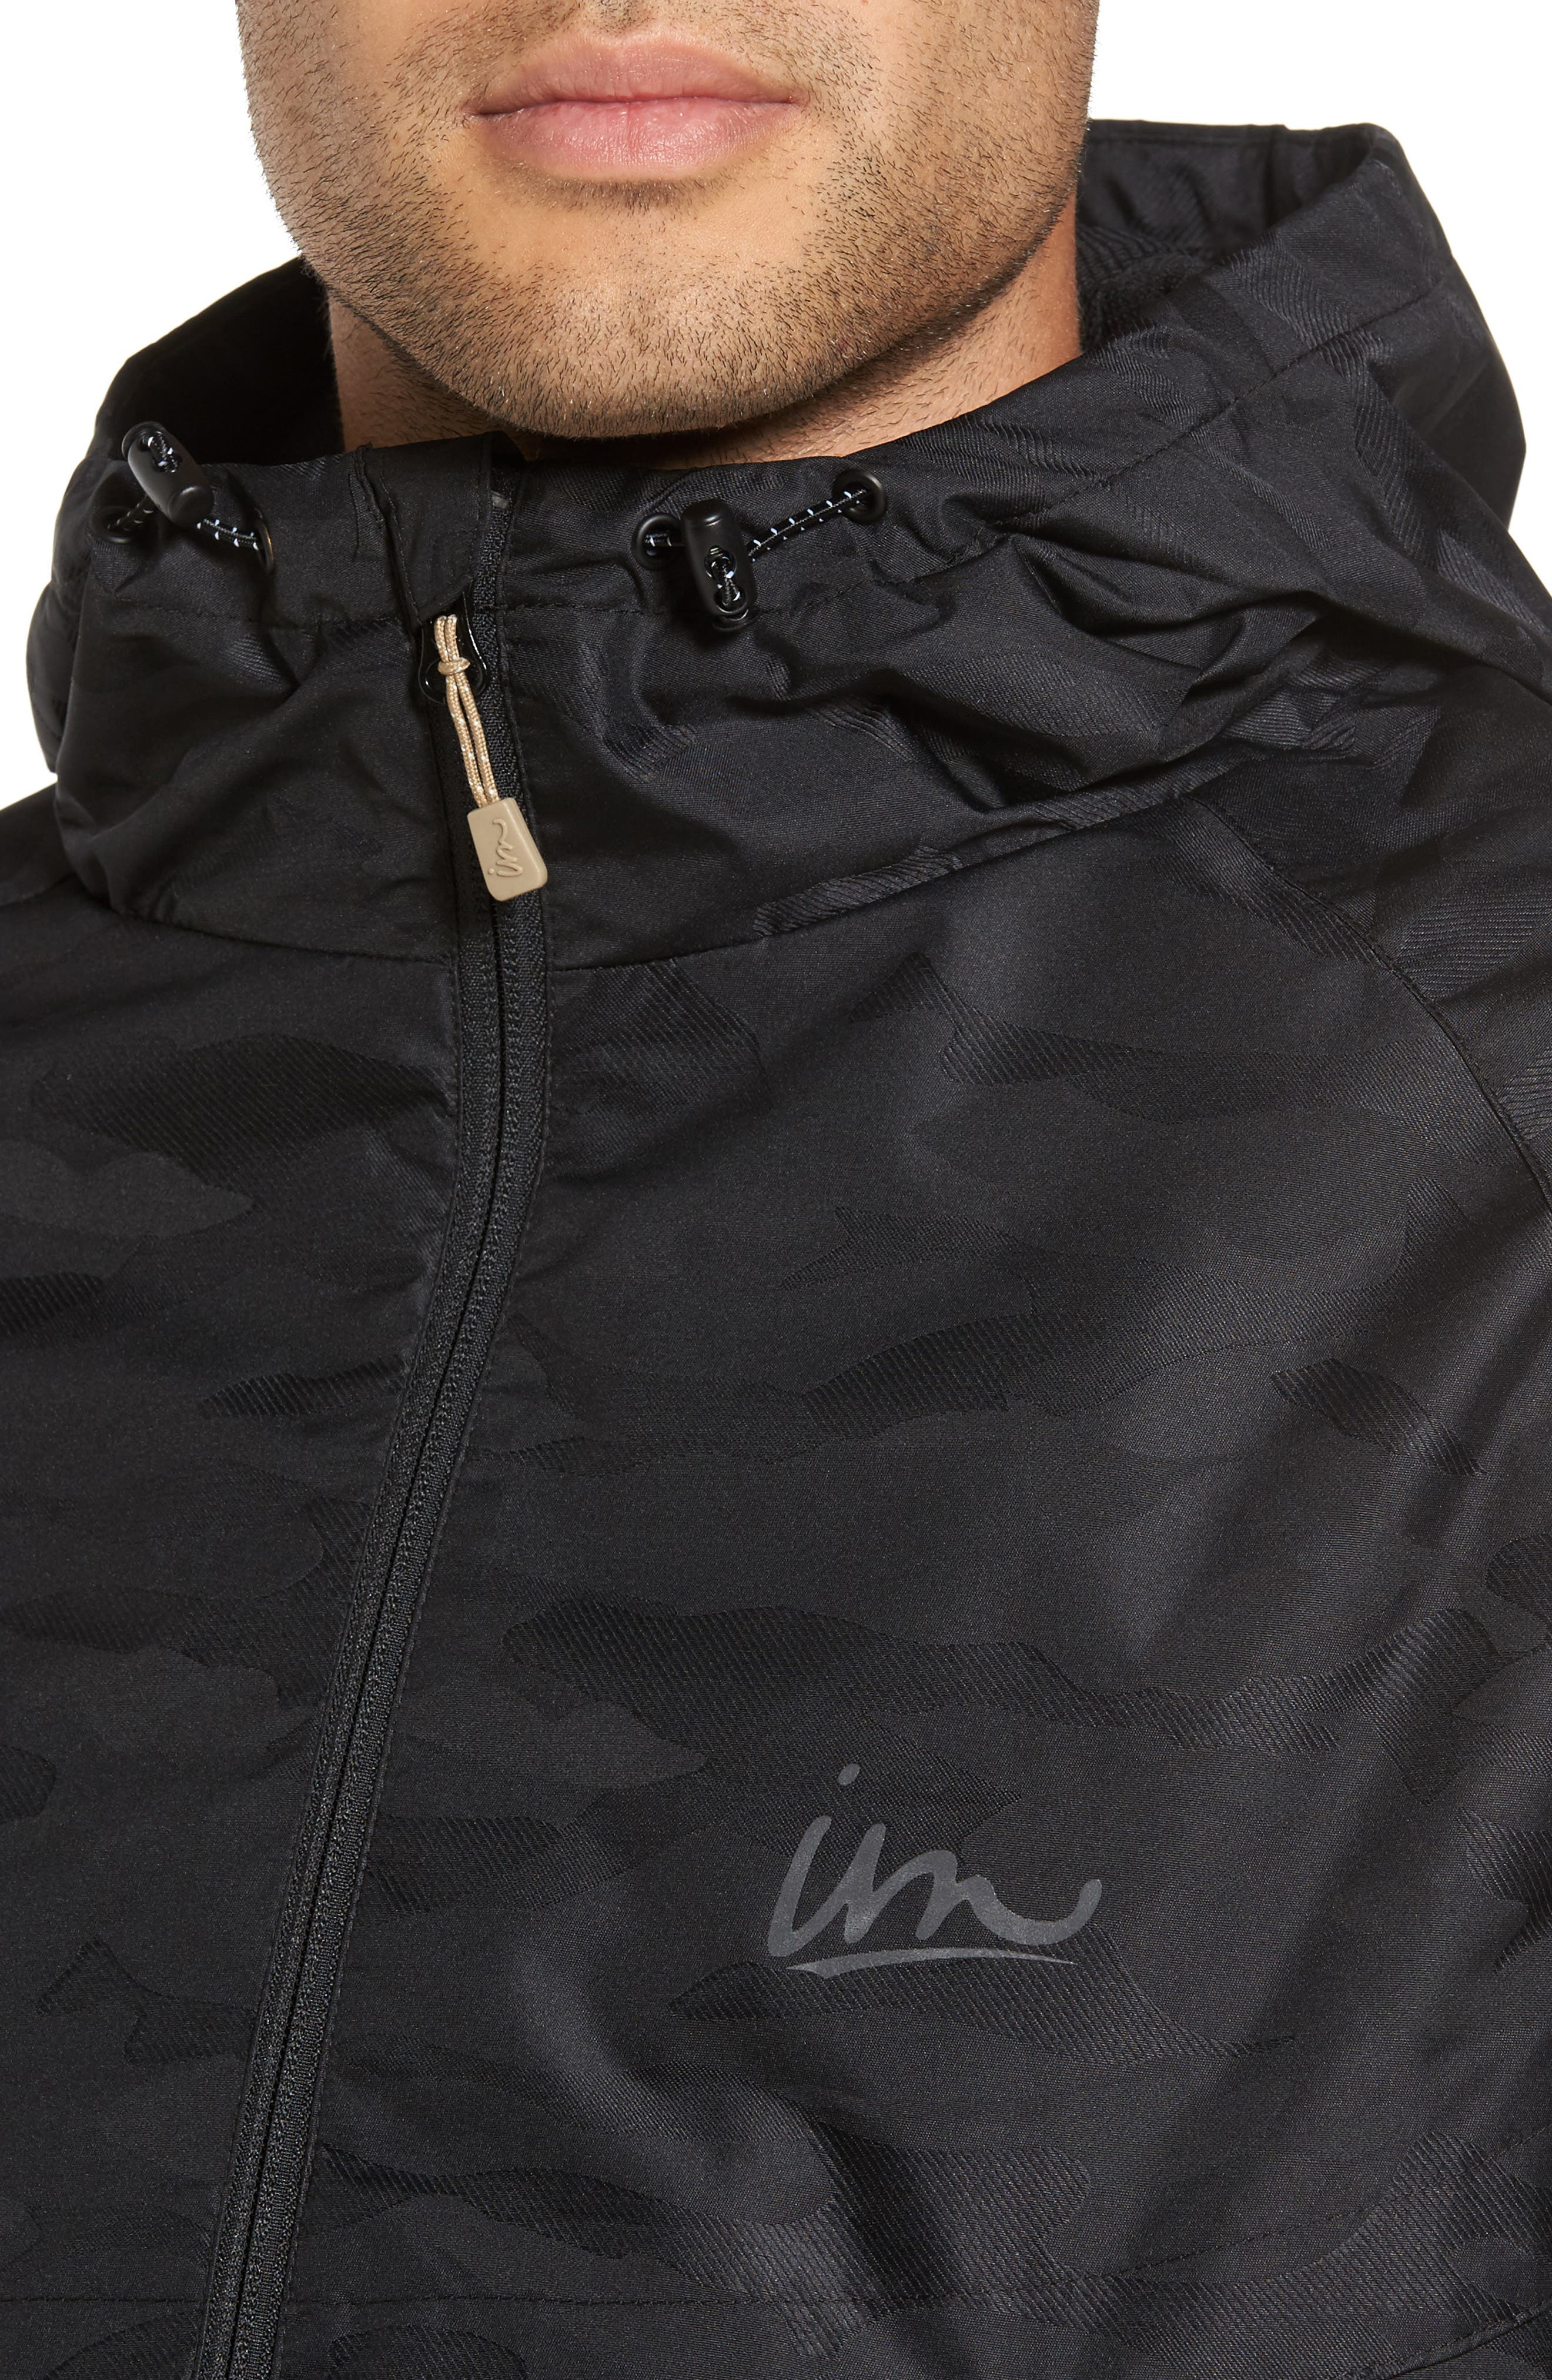 Larter Breaker Jacket,                             Alternate thumbnail 4, color,                             Black Camo